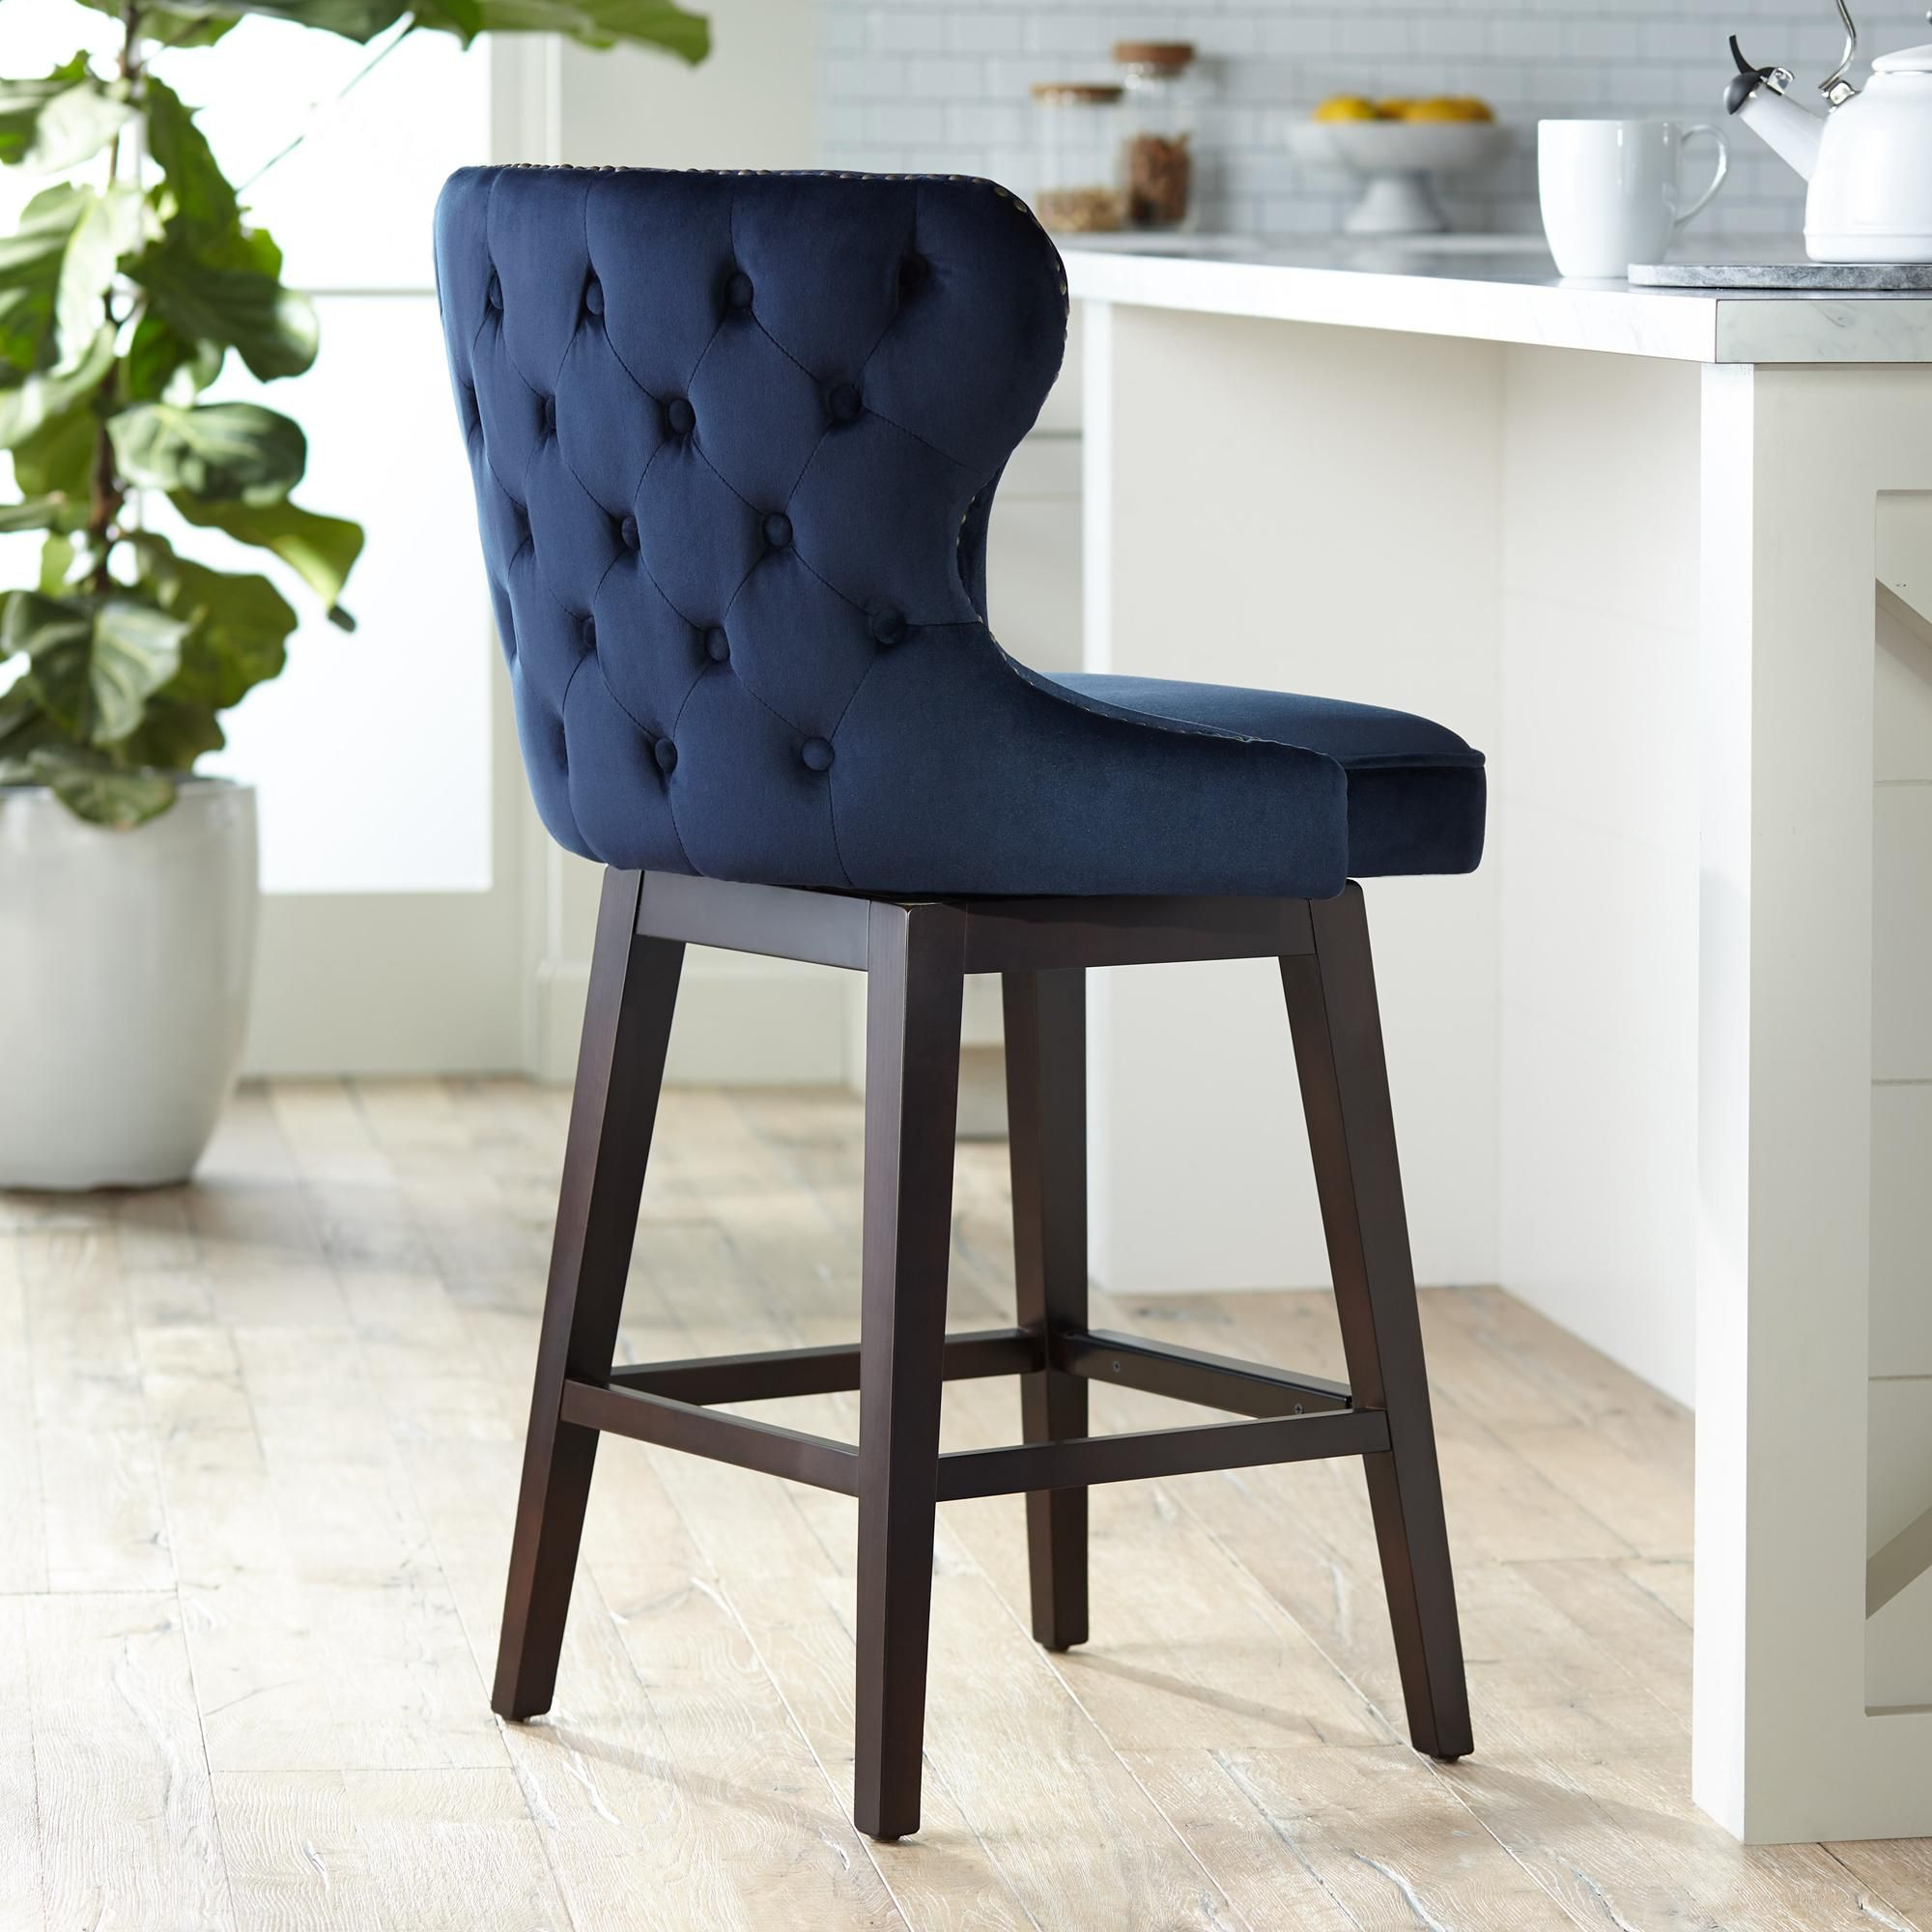 Ariana 25 And One Half Inch Brass Trimmed Navy Blue Swivel Counter Stool Swivel Counter Stools Counter Stools Blue Bar Stools